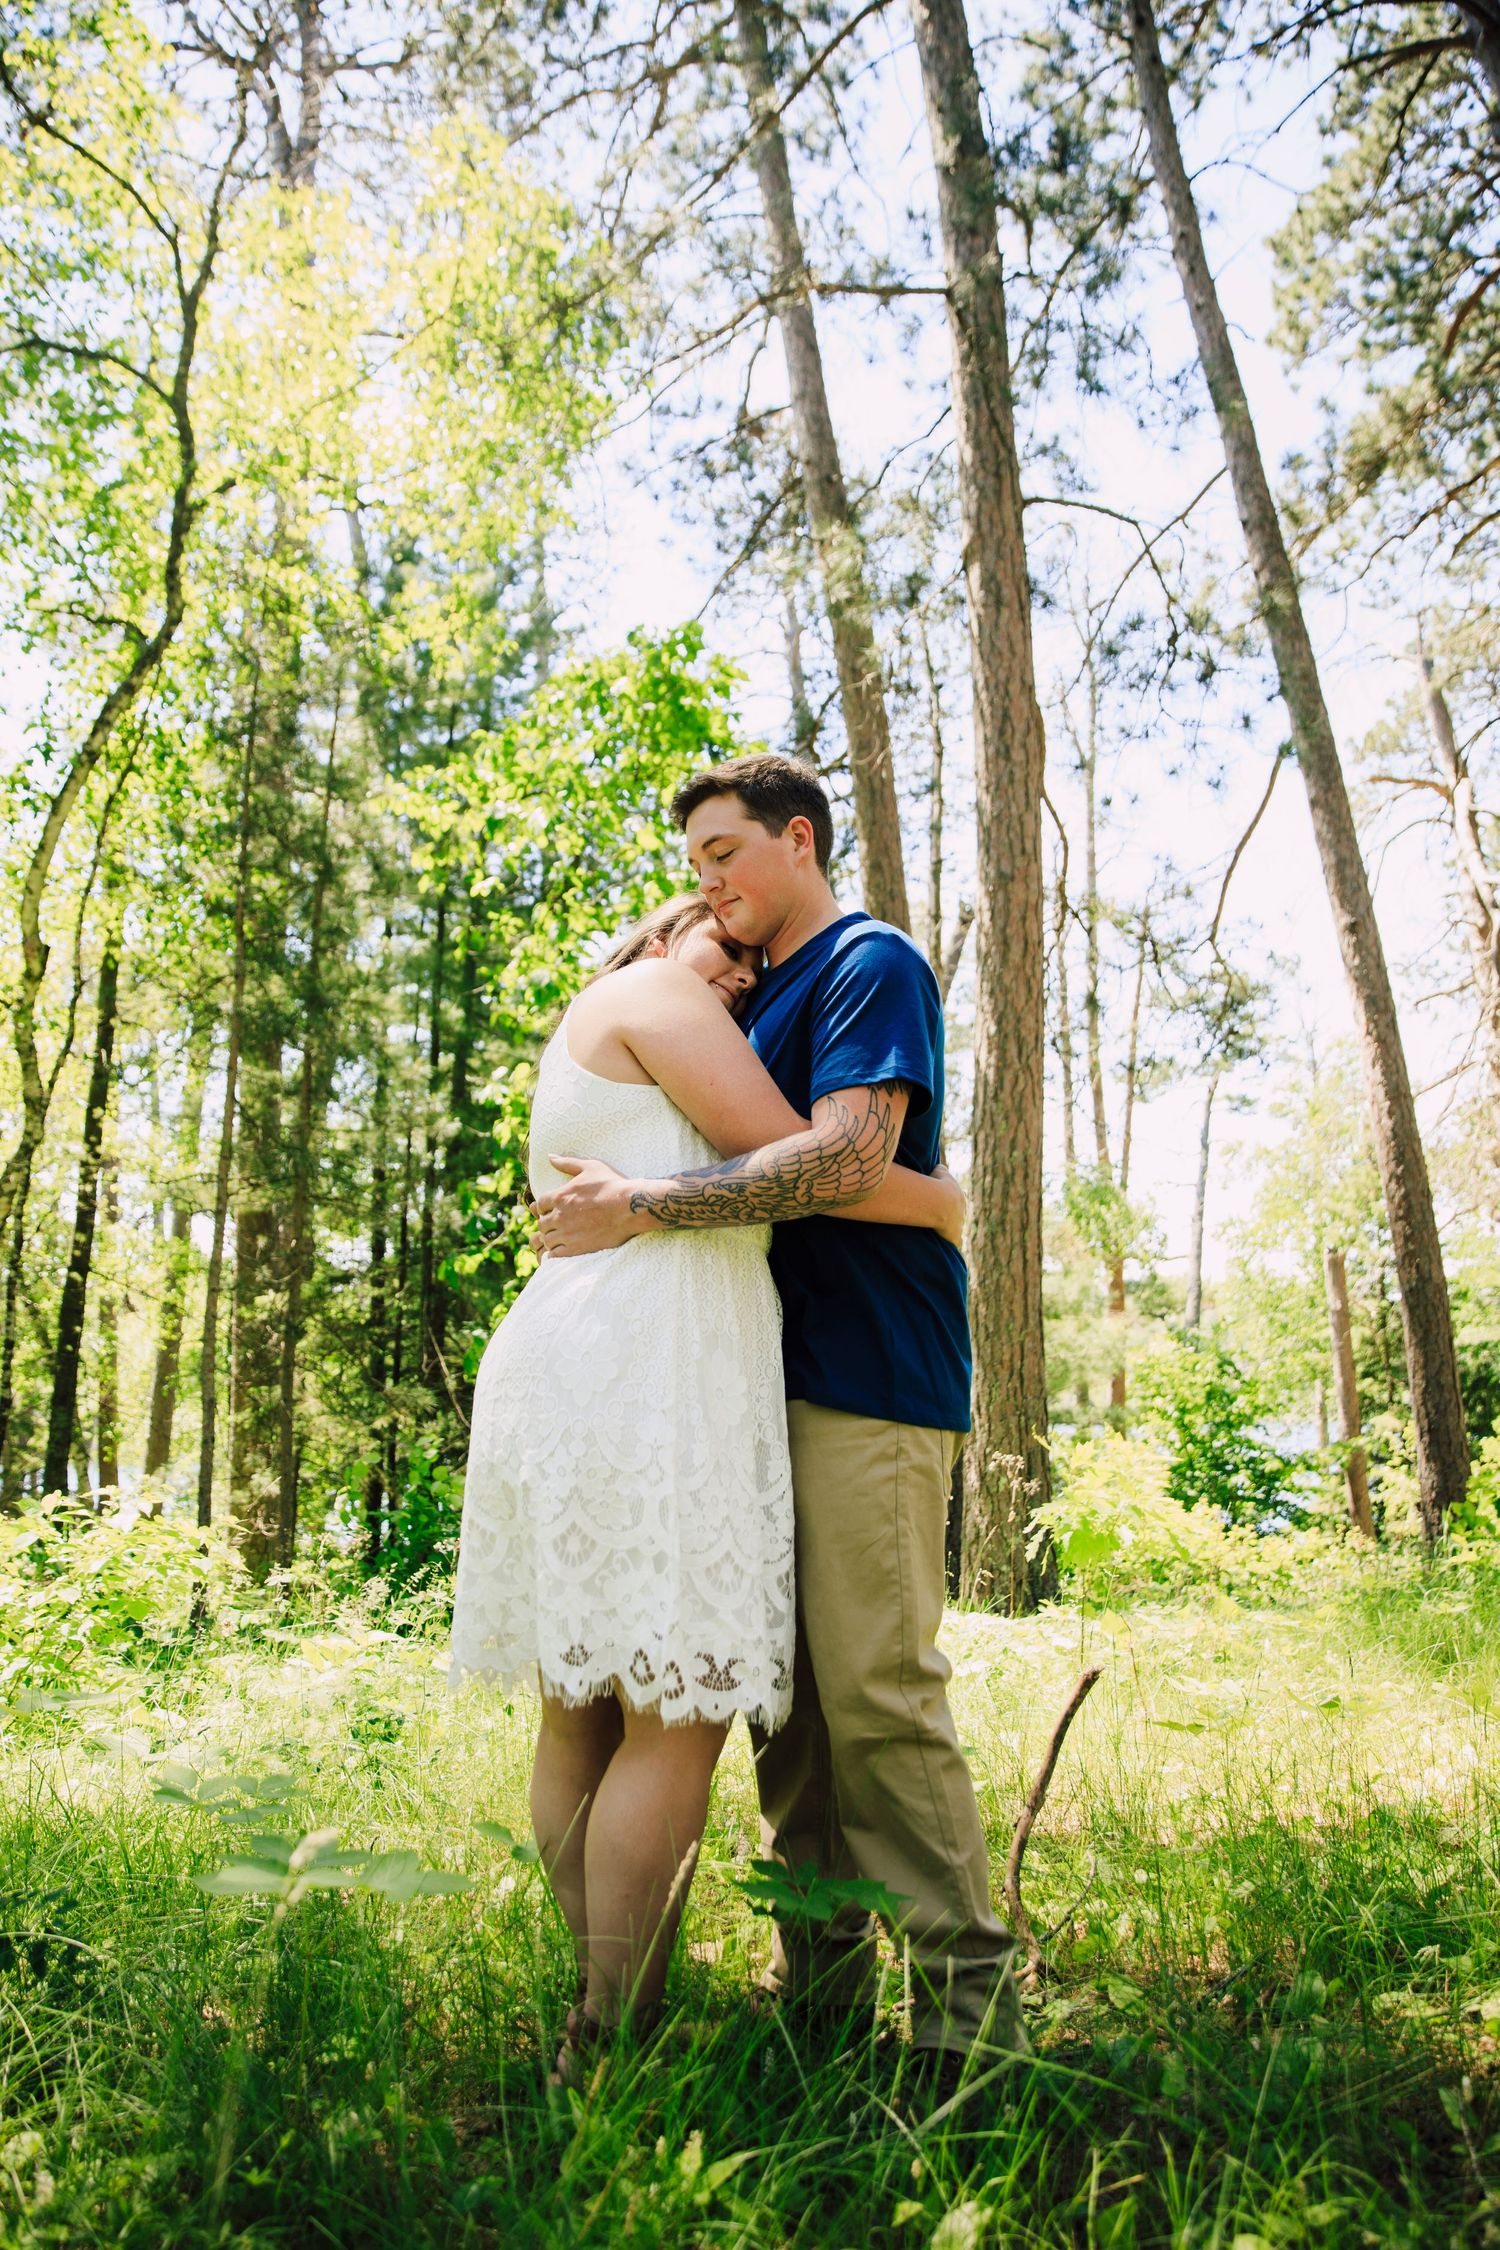 Engagement session love story Itasca State Park Park Rapids MN ND Photographer summer love